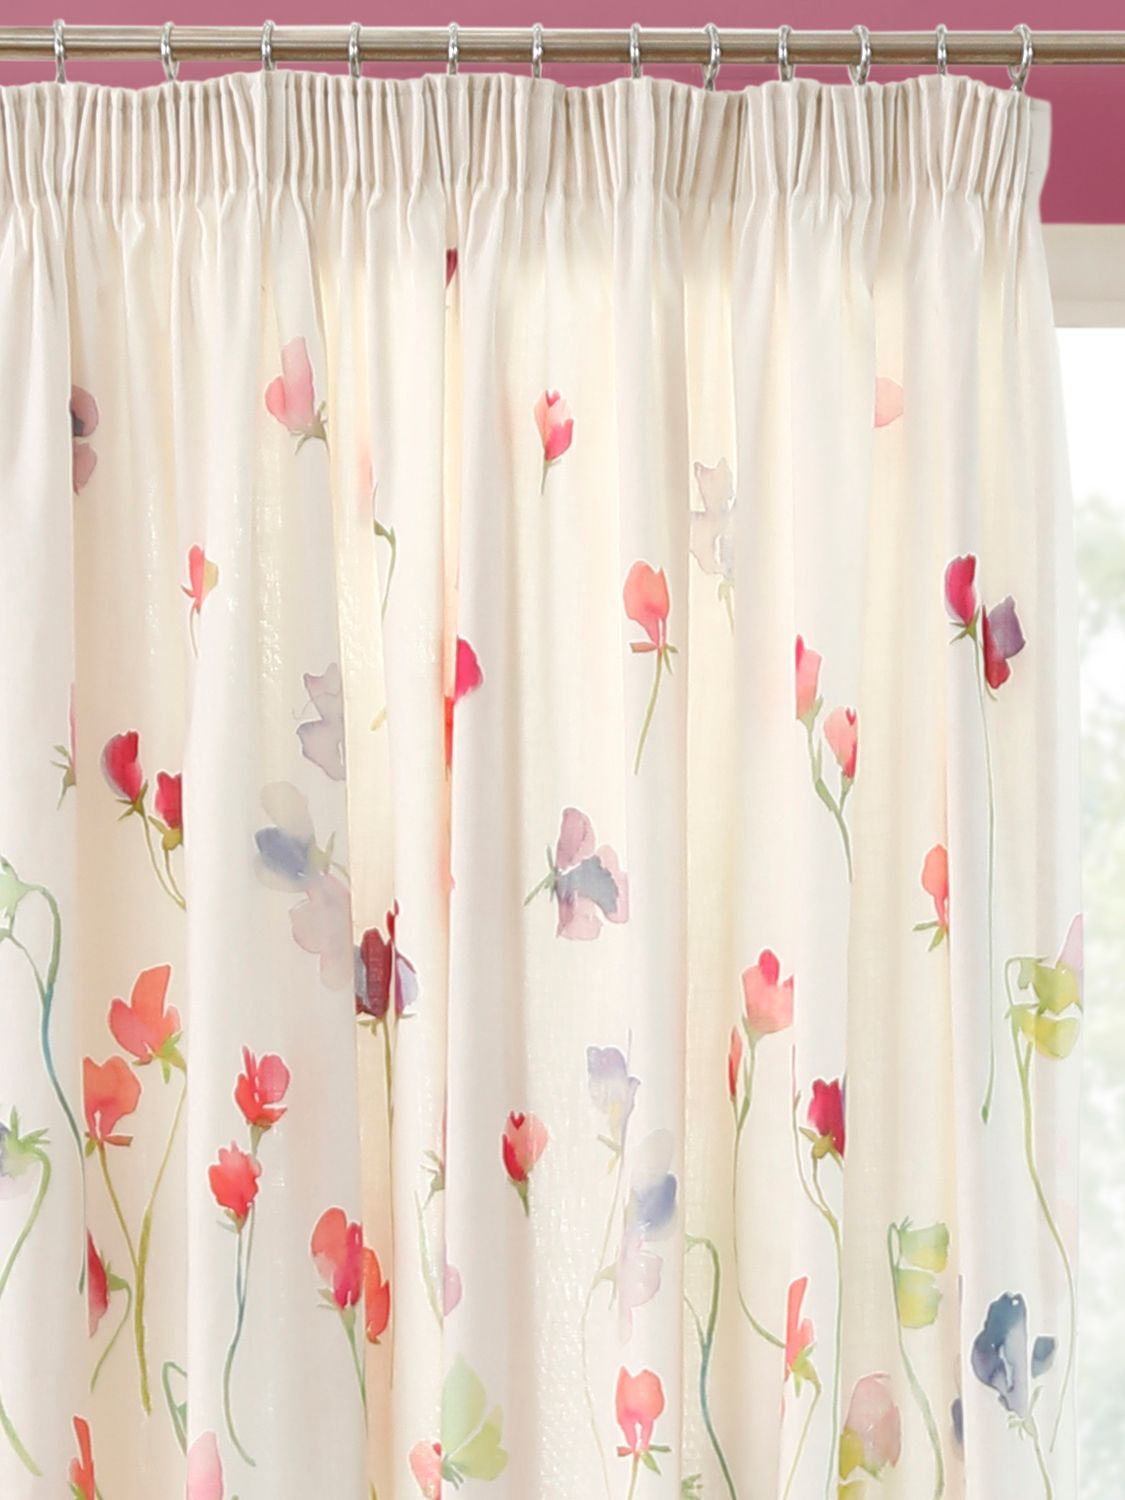 bluebellgray bluebellgray Sweet Pea Pair Lined Pencil Pleat Curtains, Multi